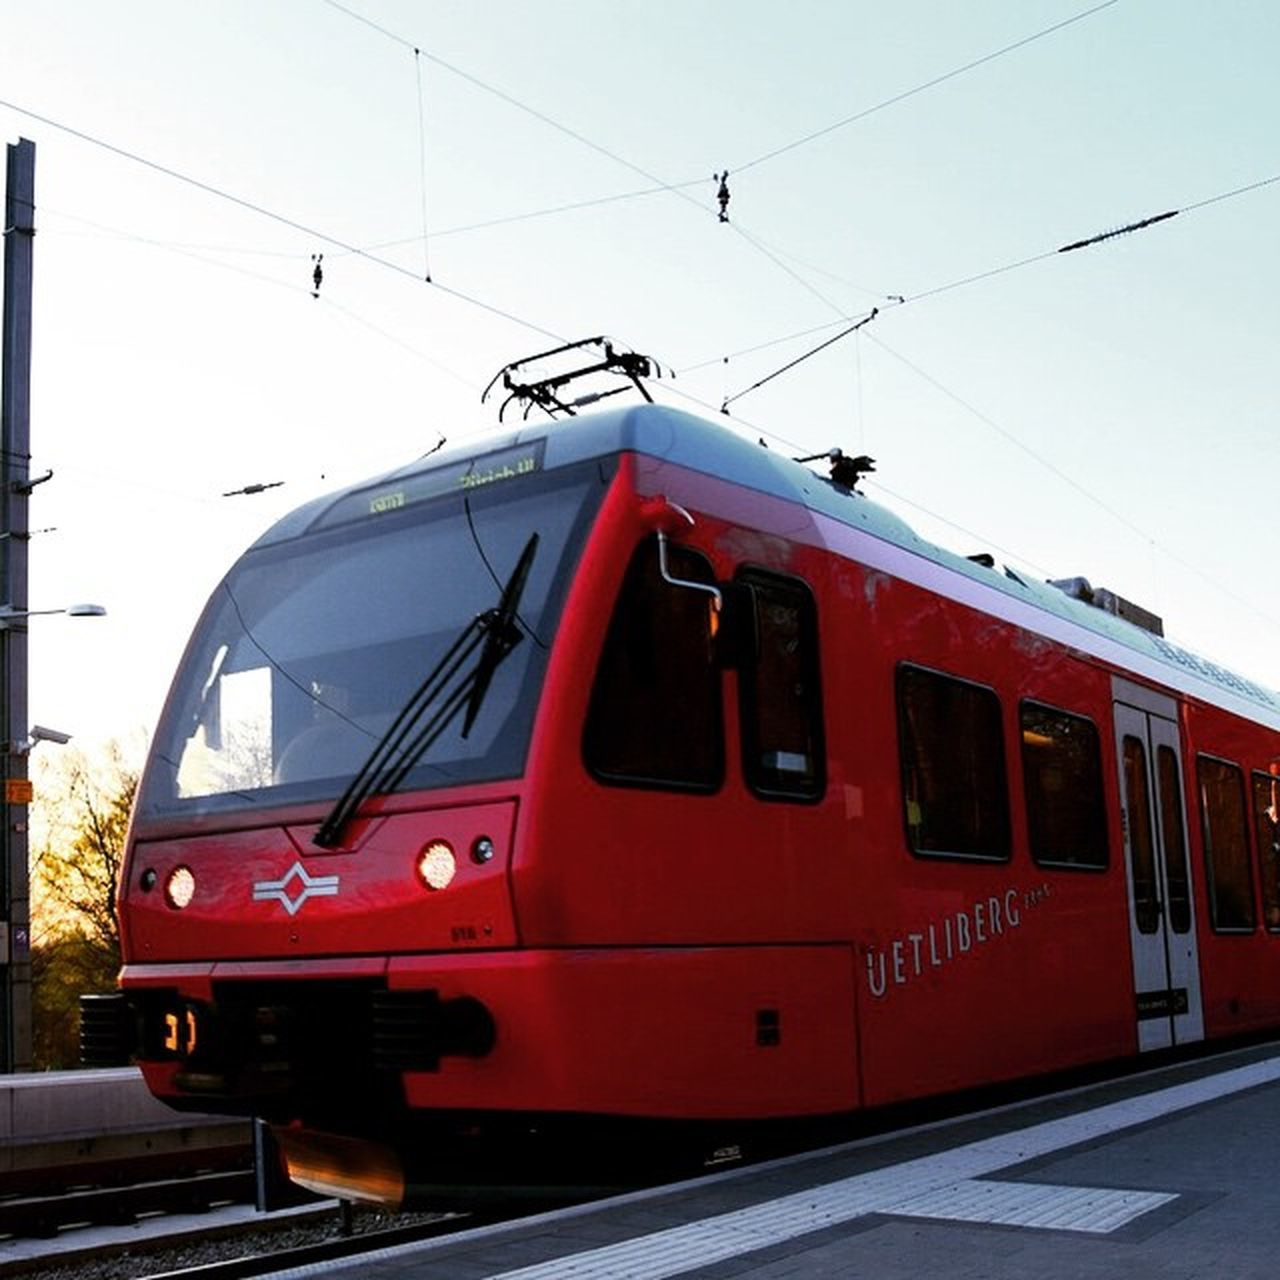 üetliberg Zürich Szu Bahn Utokulm Red Train Switzerland Swiss Sihltal Zug Rot Sunset Strom Energie Electro